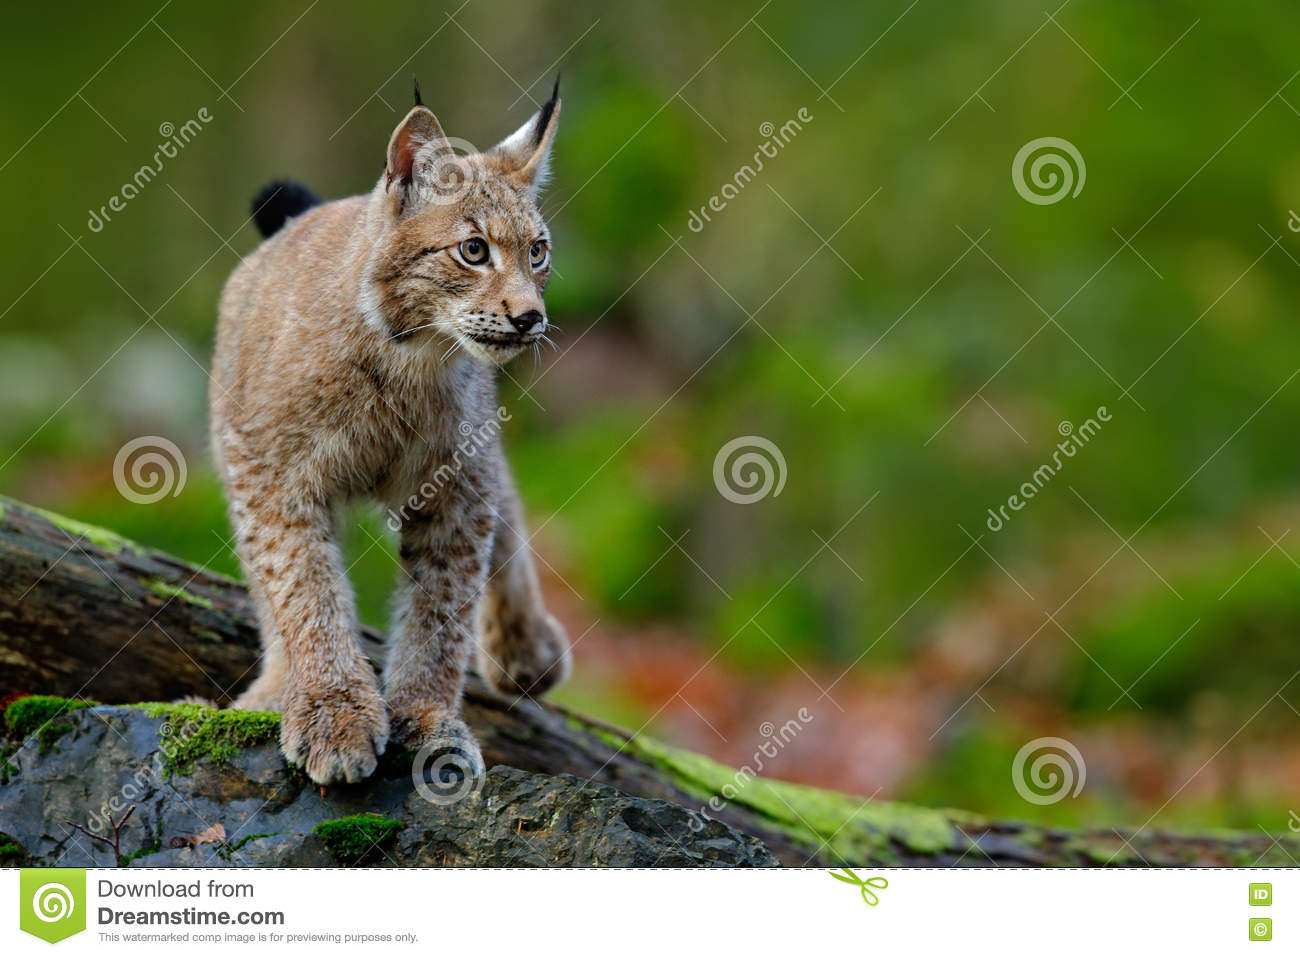 Lynx, eurasian wild cat walking on green moss stone with green forest in background, animal in the nature habitat, Germany